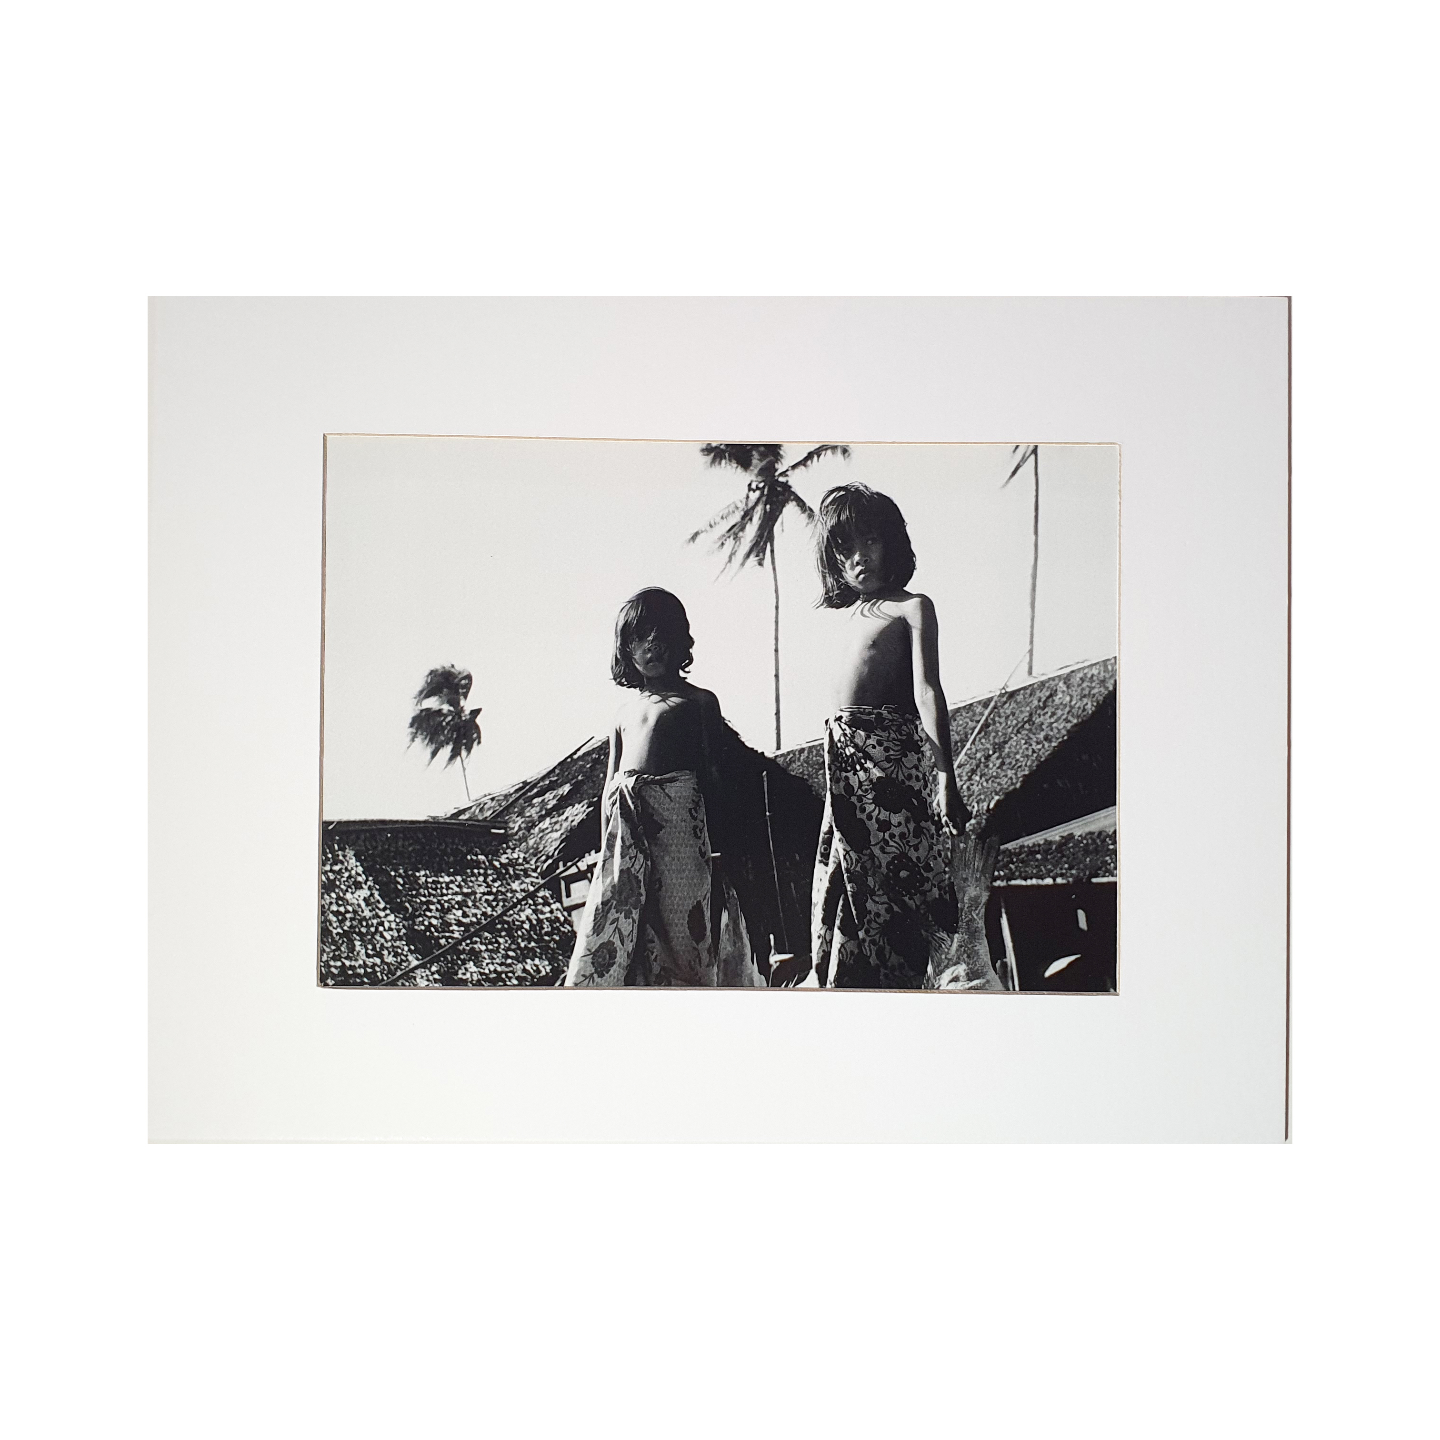 Photo Print: Two Kampung Girls by Yip Cheong Fun